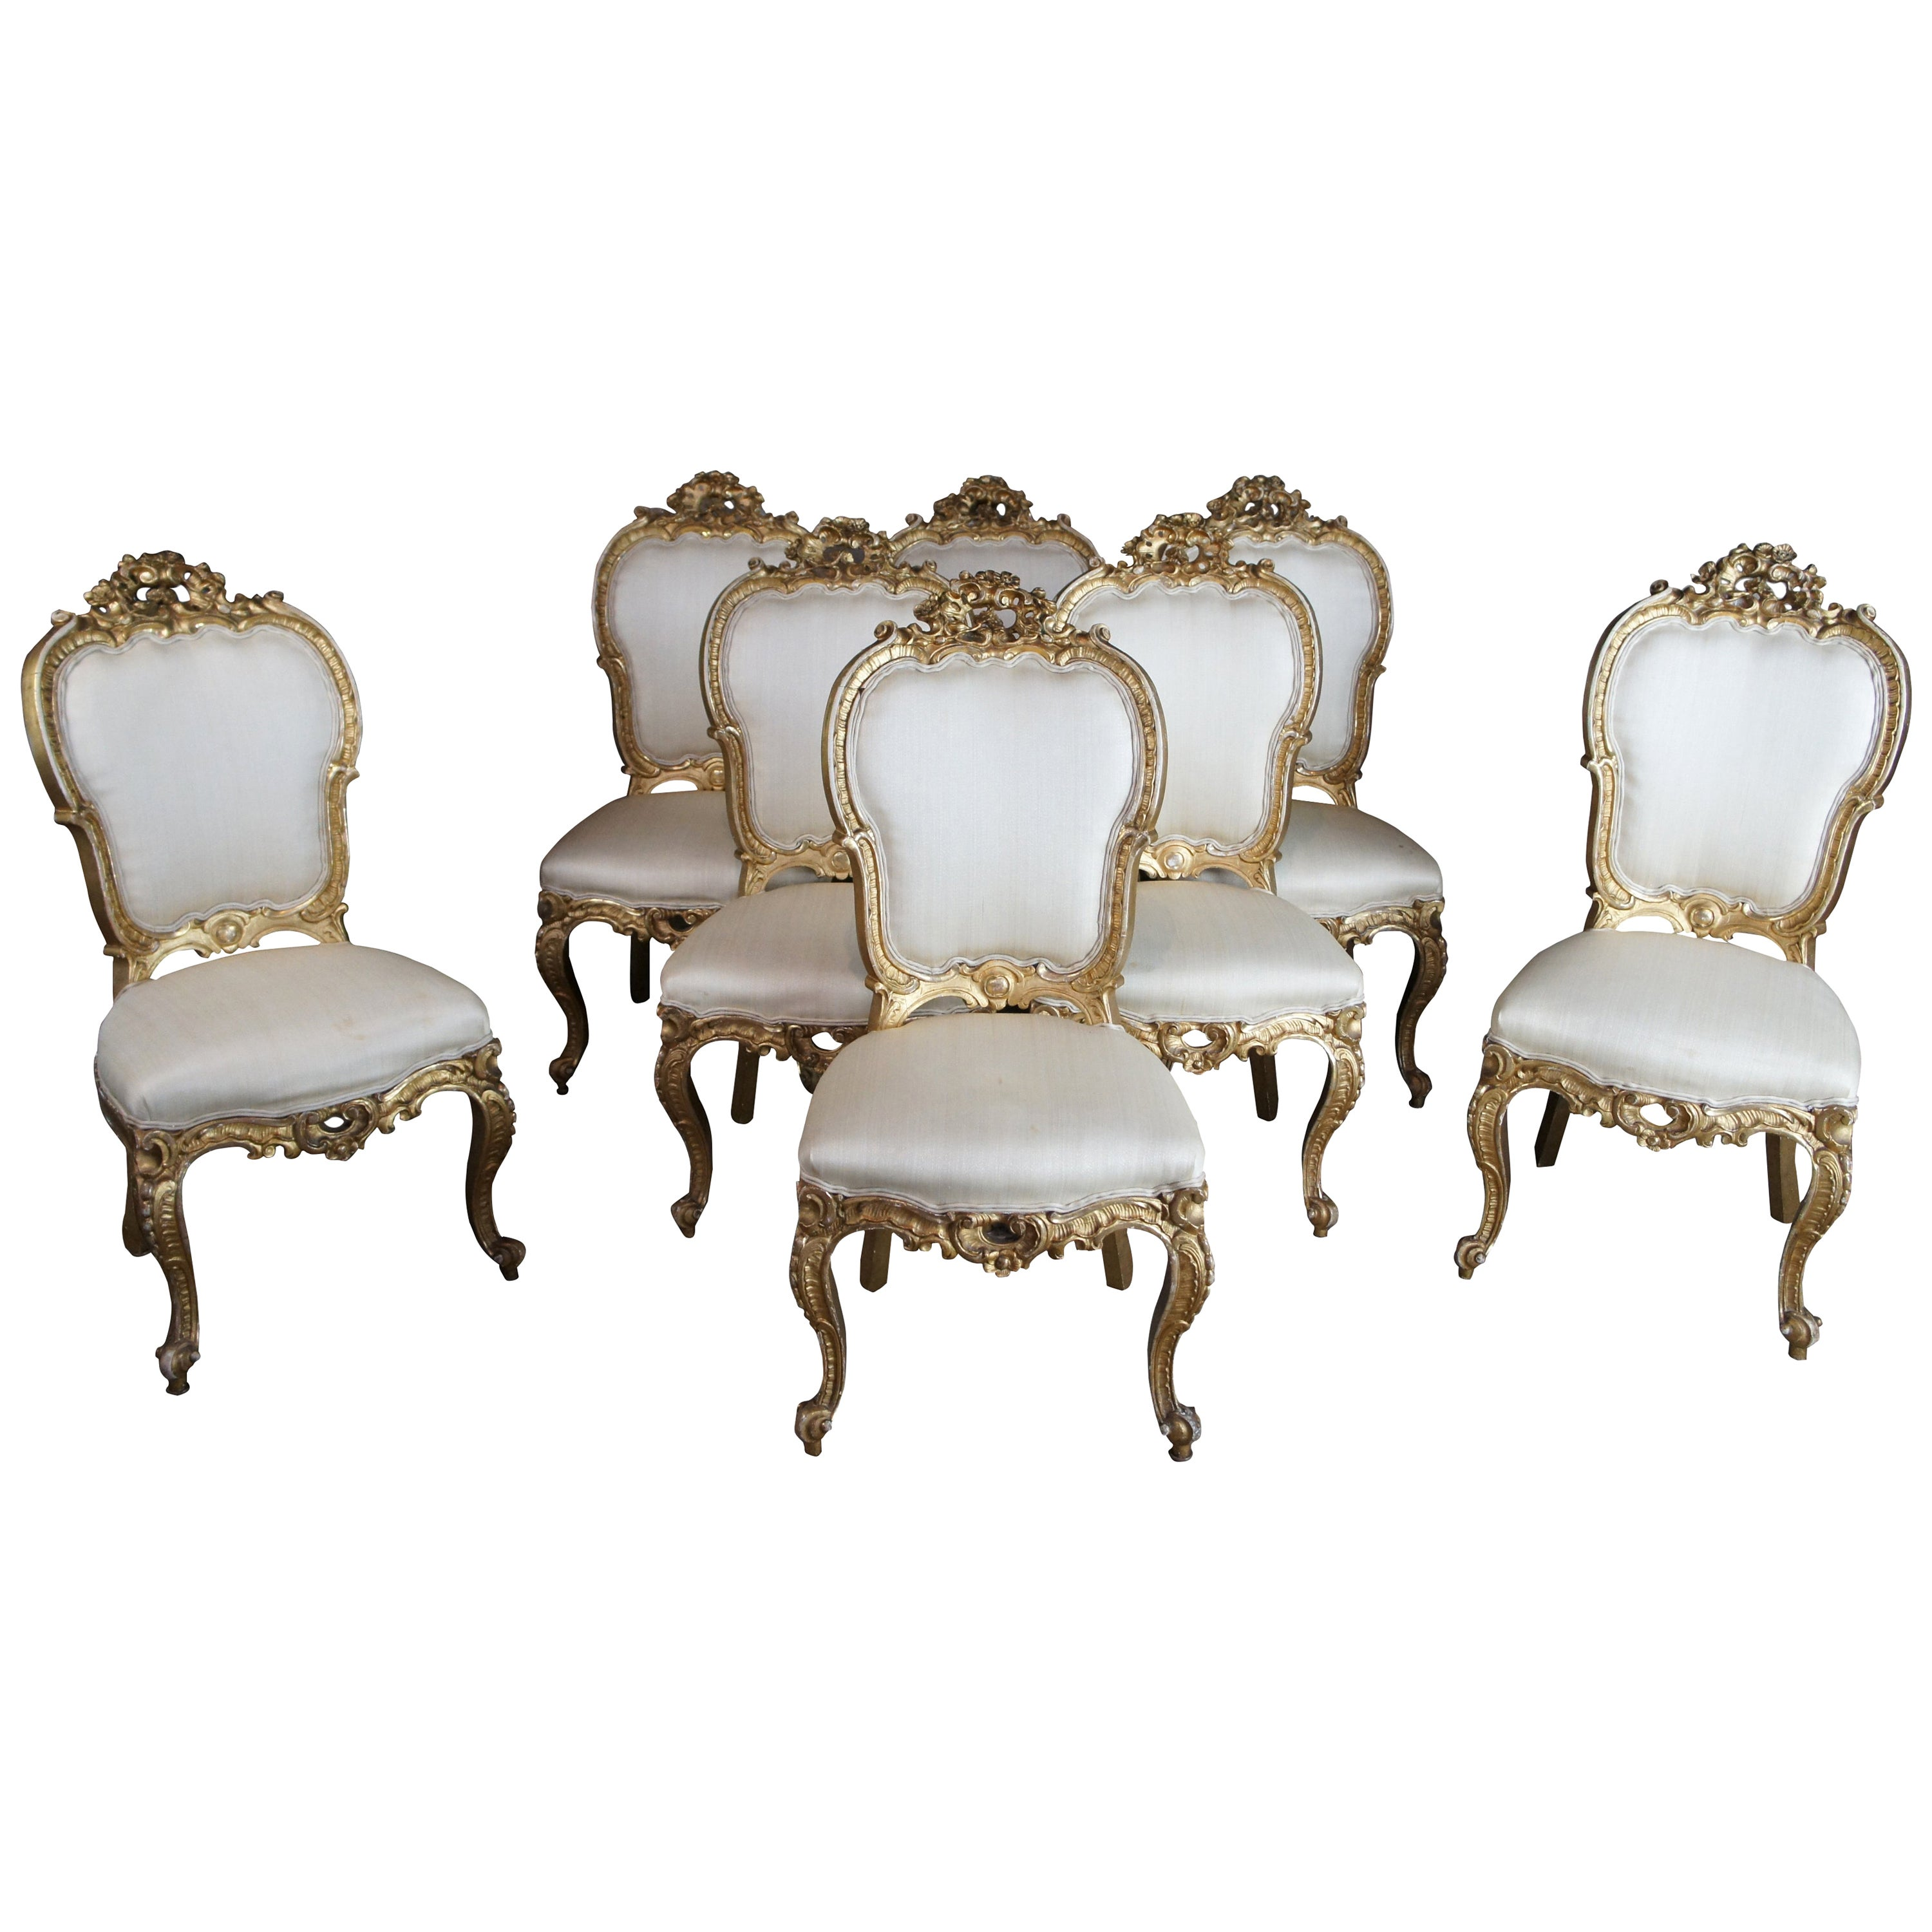 8 Antique Swedish 18th Century Baroque French Louis XV Rococo Gilt Dining Chairs